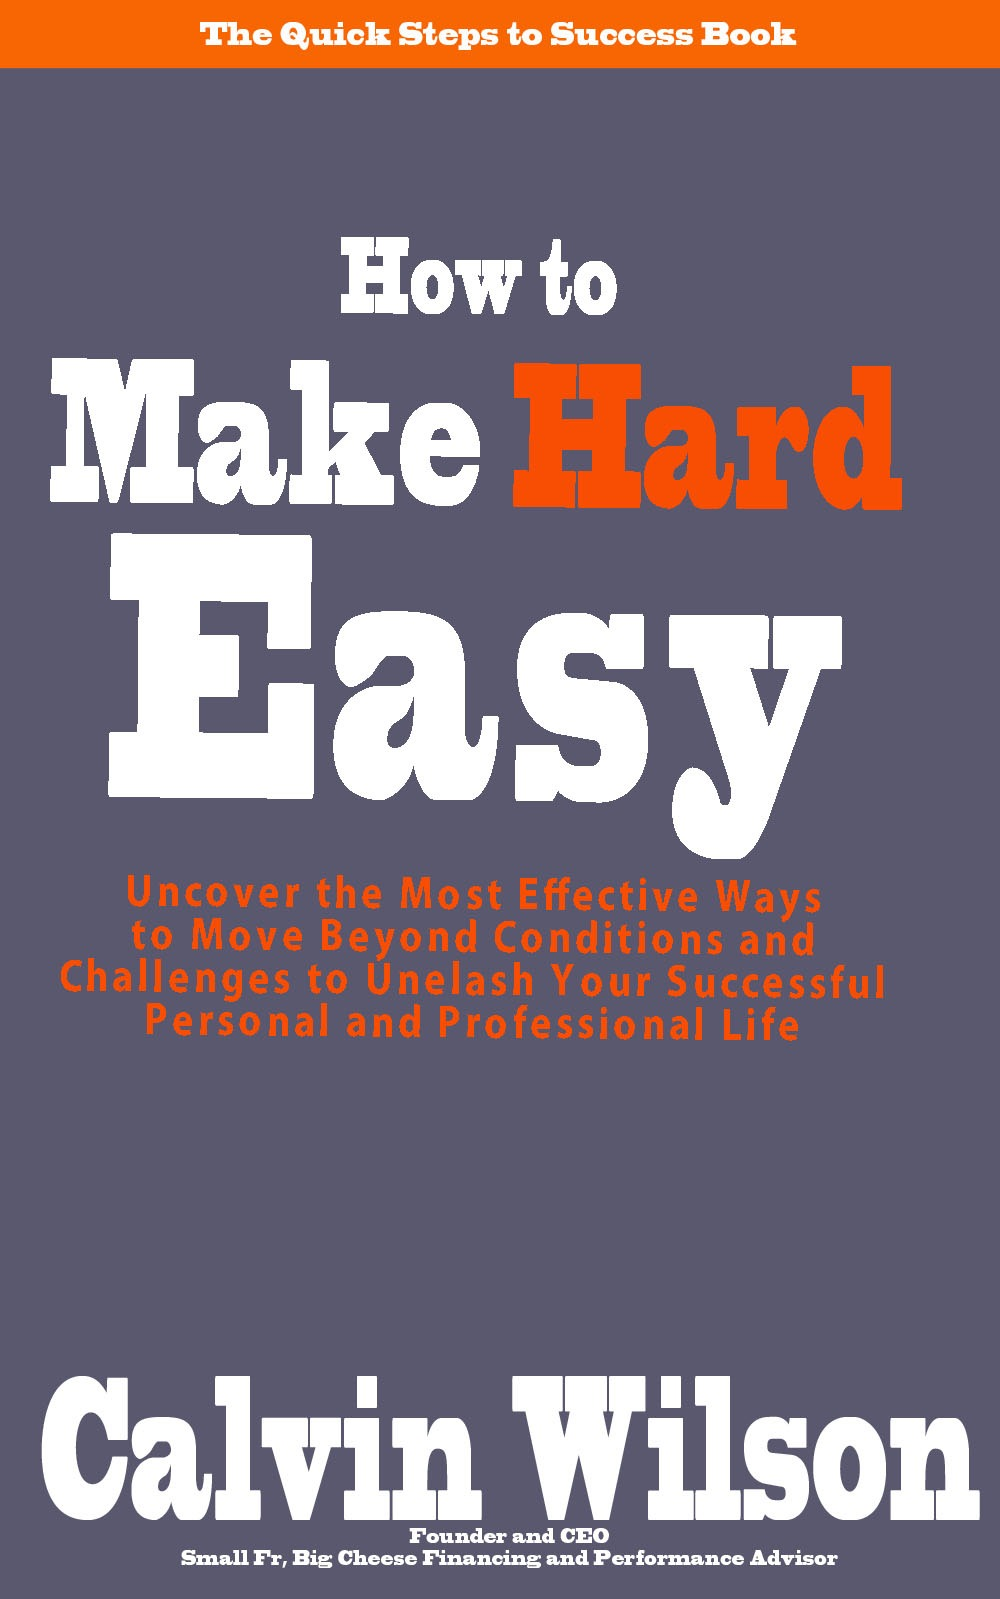 How To Make Book Cover Simple : How to make hard quot easy the quick steps success book